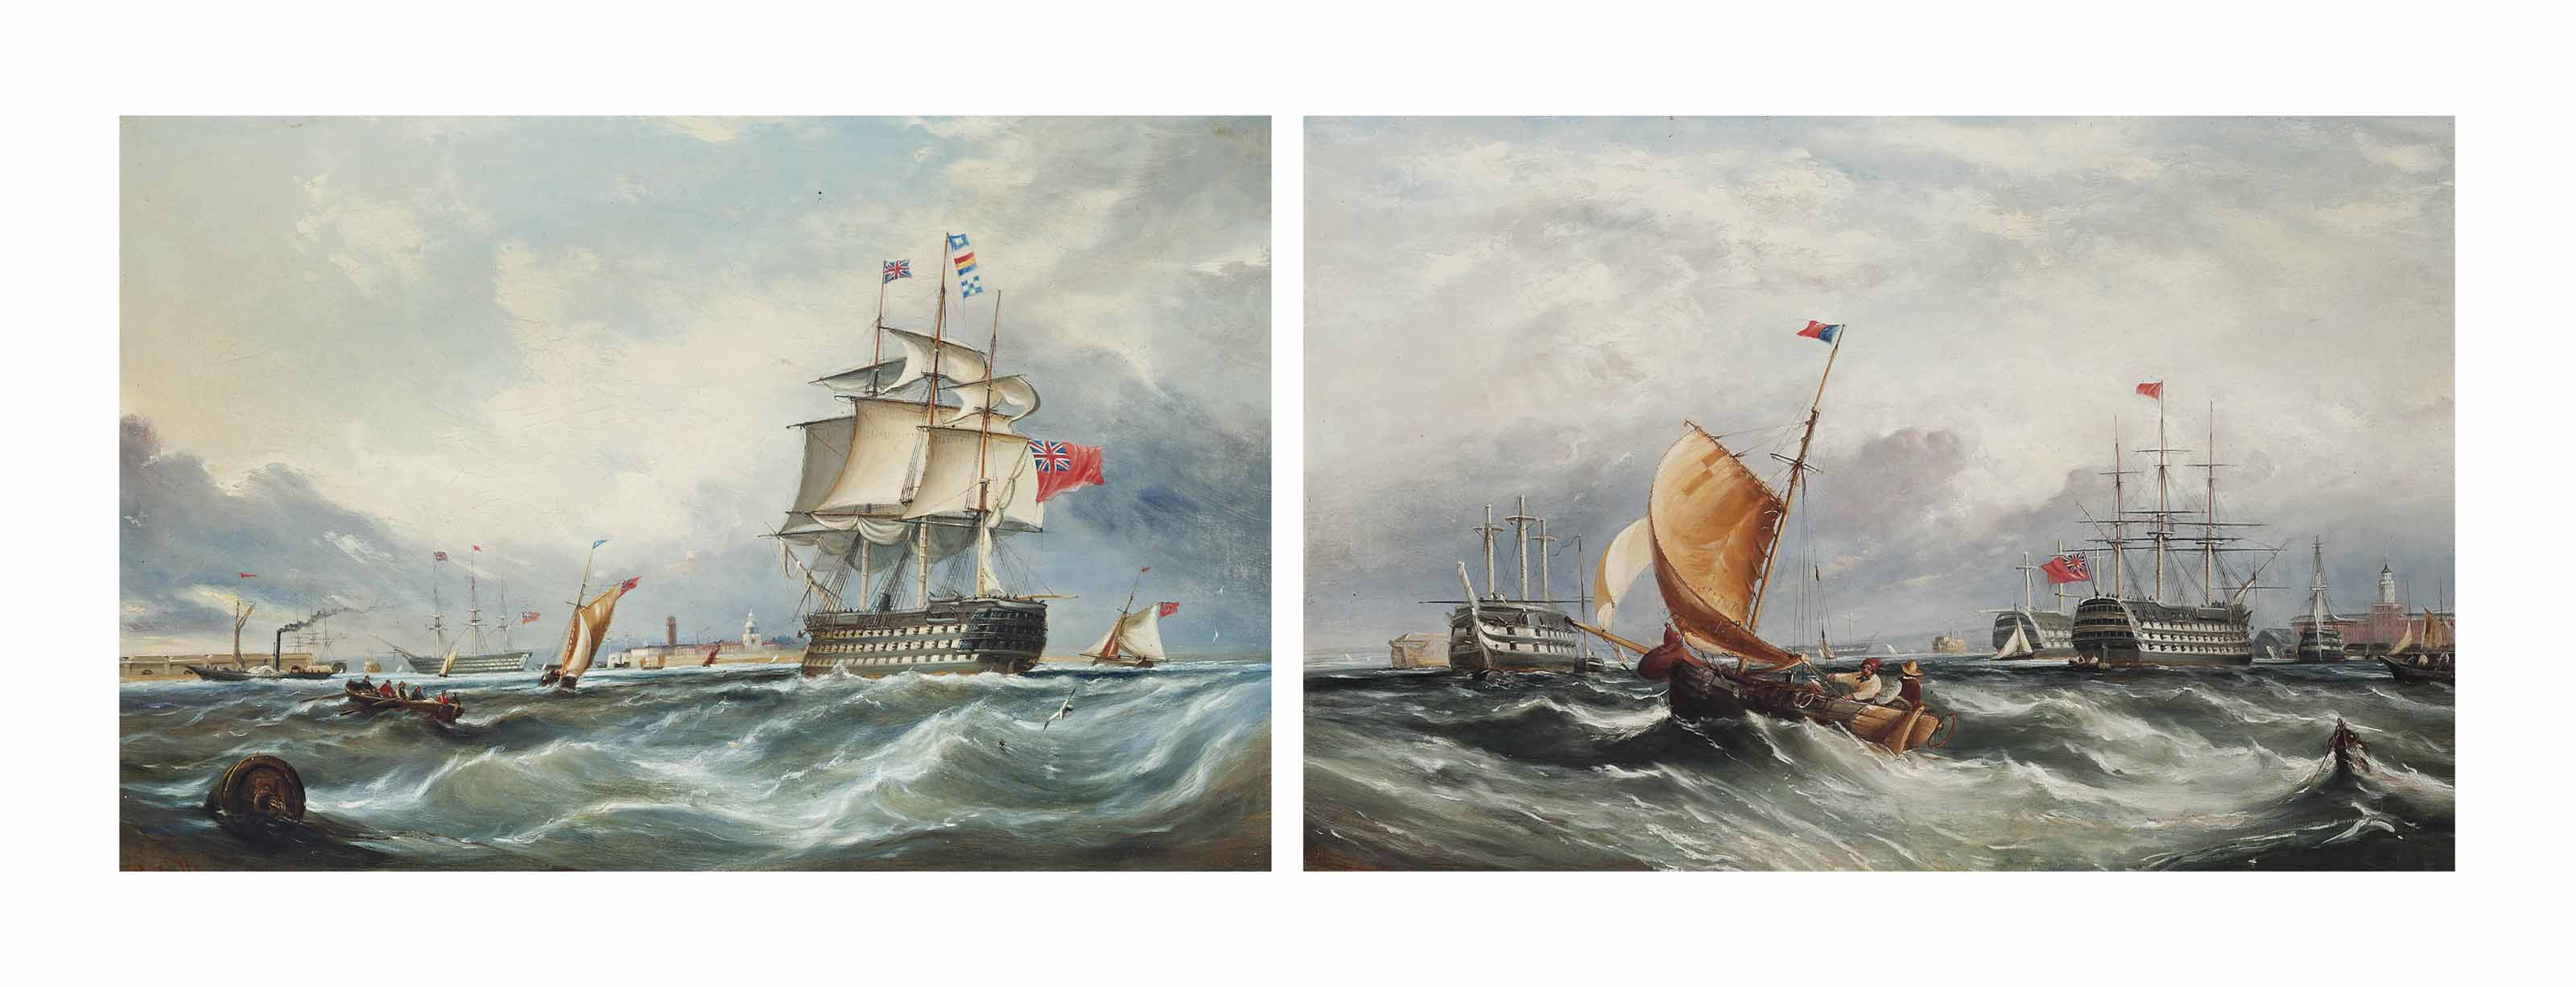 A three-decker calling for a pilot at the entrance to Portsmouth Harbour, with a paddle steamer and other shipping beyond; and Fishermen on a blustery day with prison hulks and a three-decker lying at anchor in Portsmouth Harbour